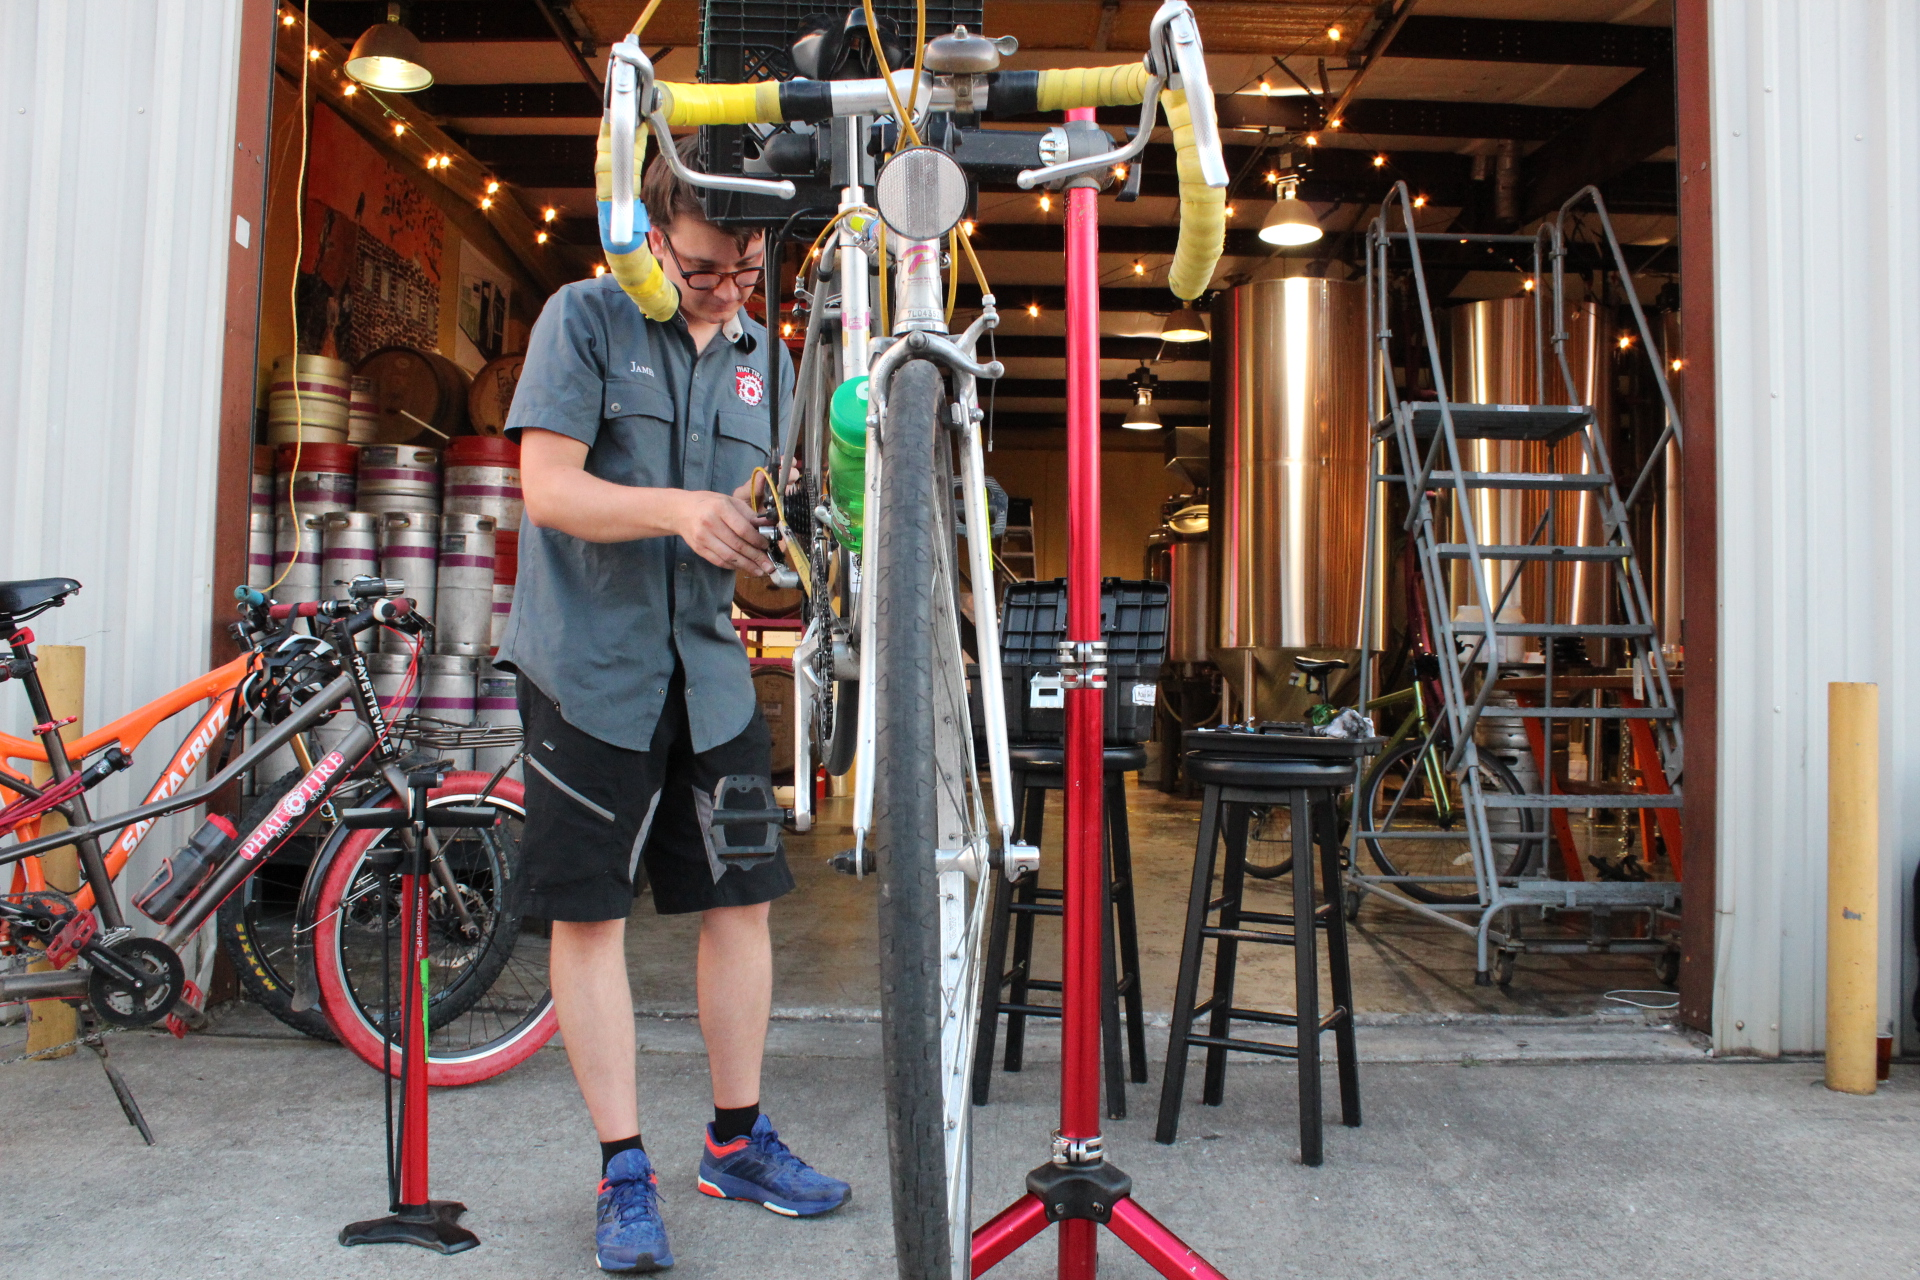 PEDALS & PINTS - Every Thursday during the warm months, we partner with Phat Tire to offer you free bike tune-ups while you enjoy a beer (or two). Pedals and Pints with warmer weather and longer days in April.